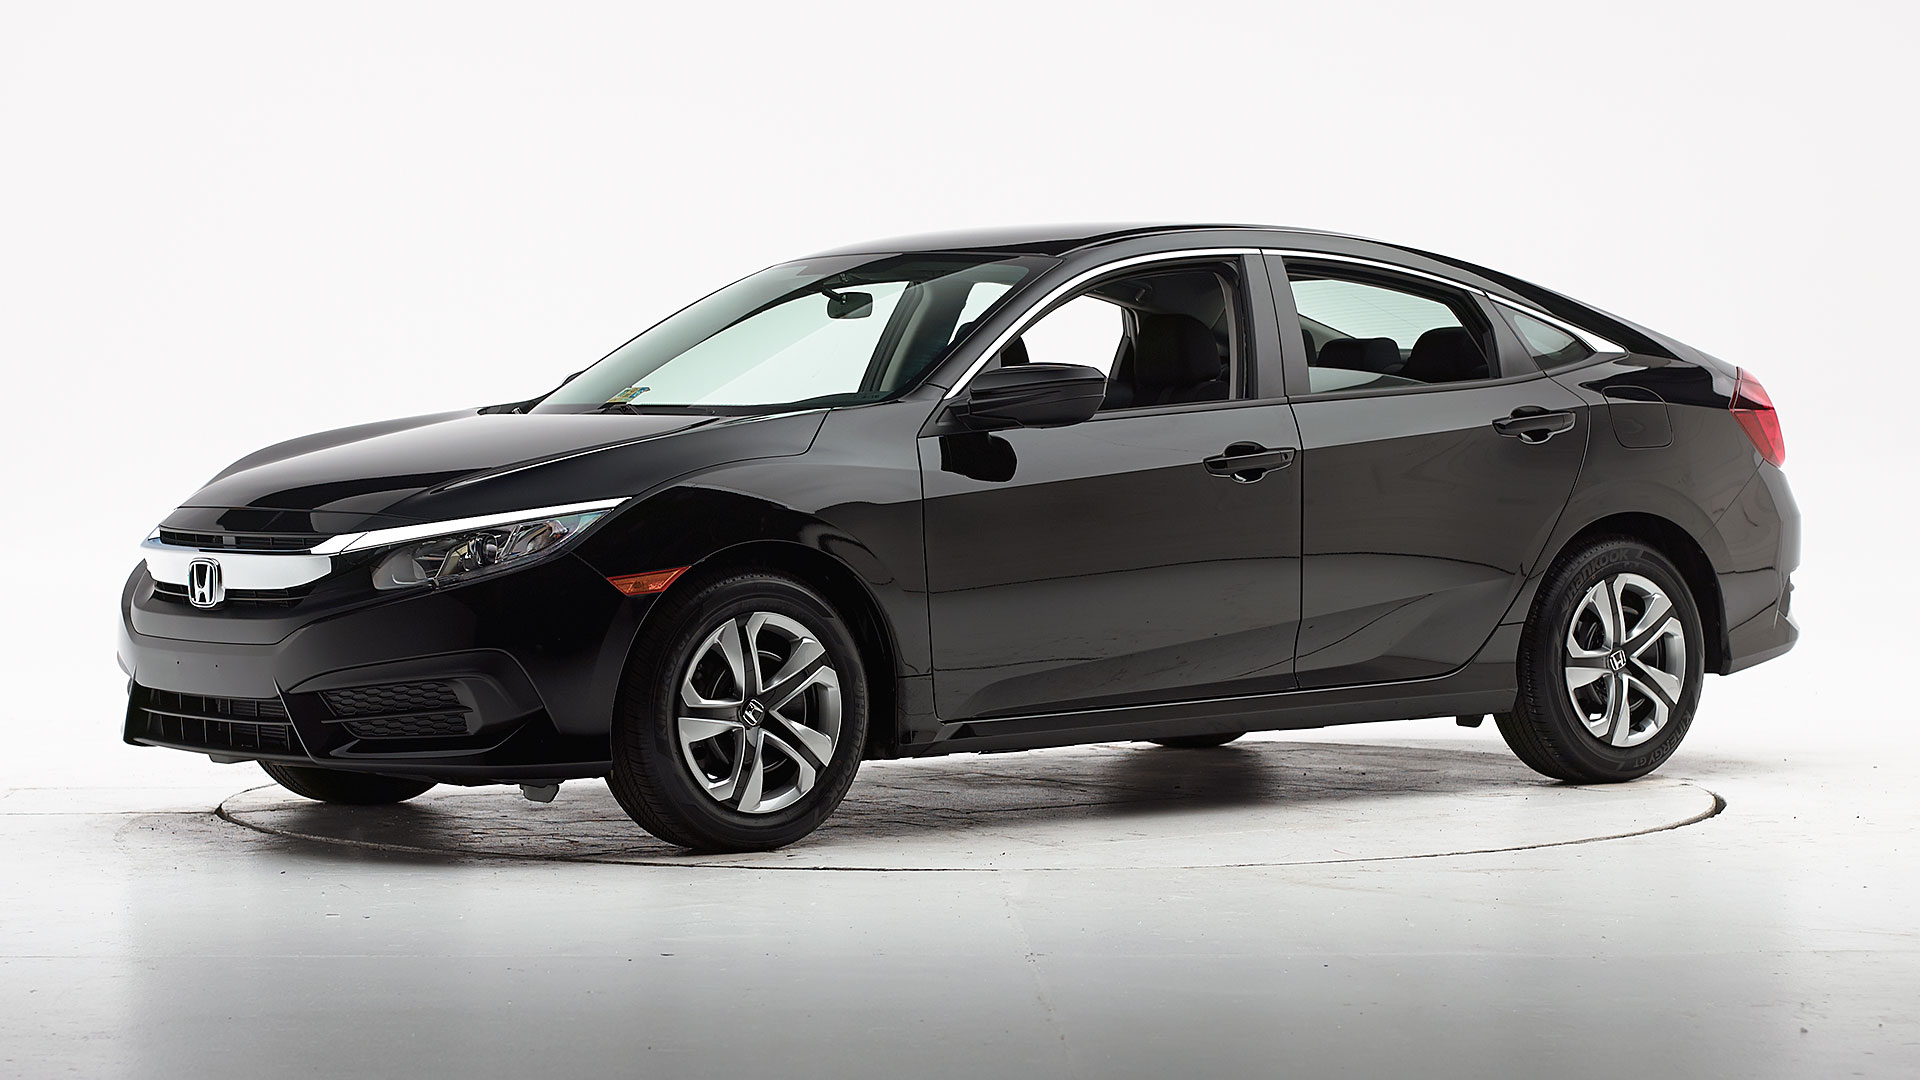 2016 Honda Civic 4-door sedan